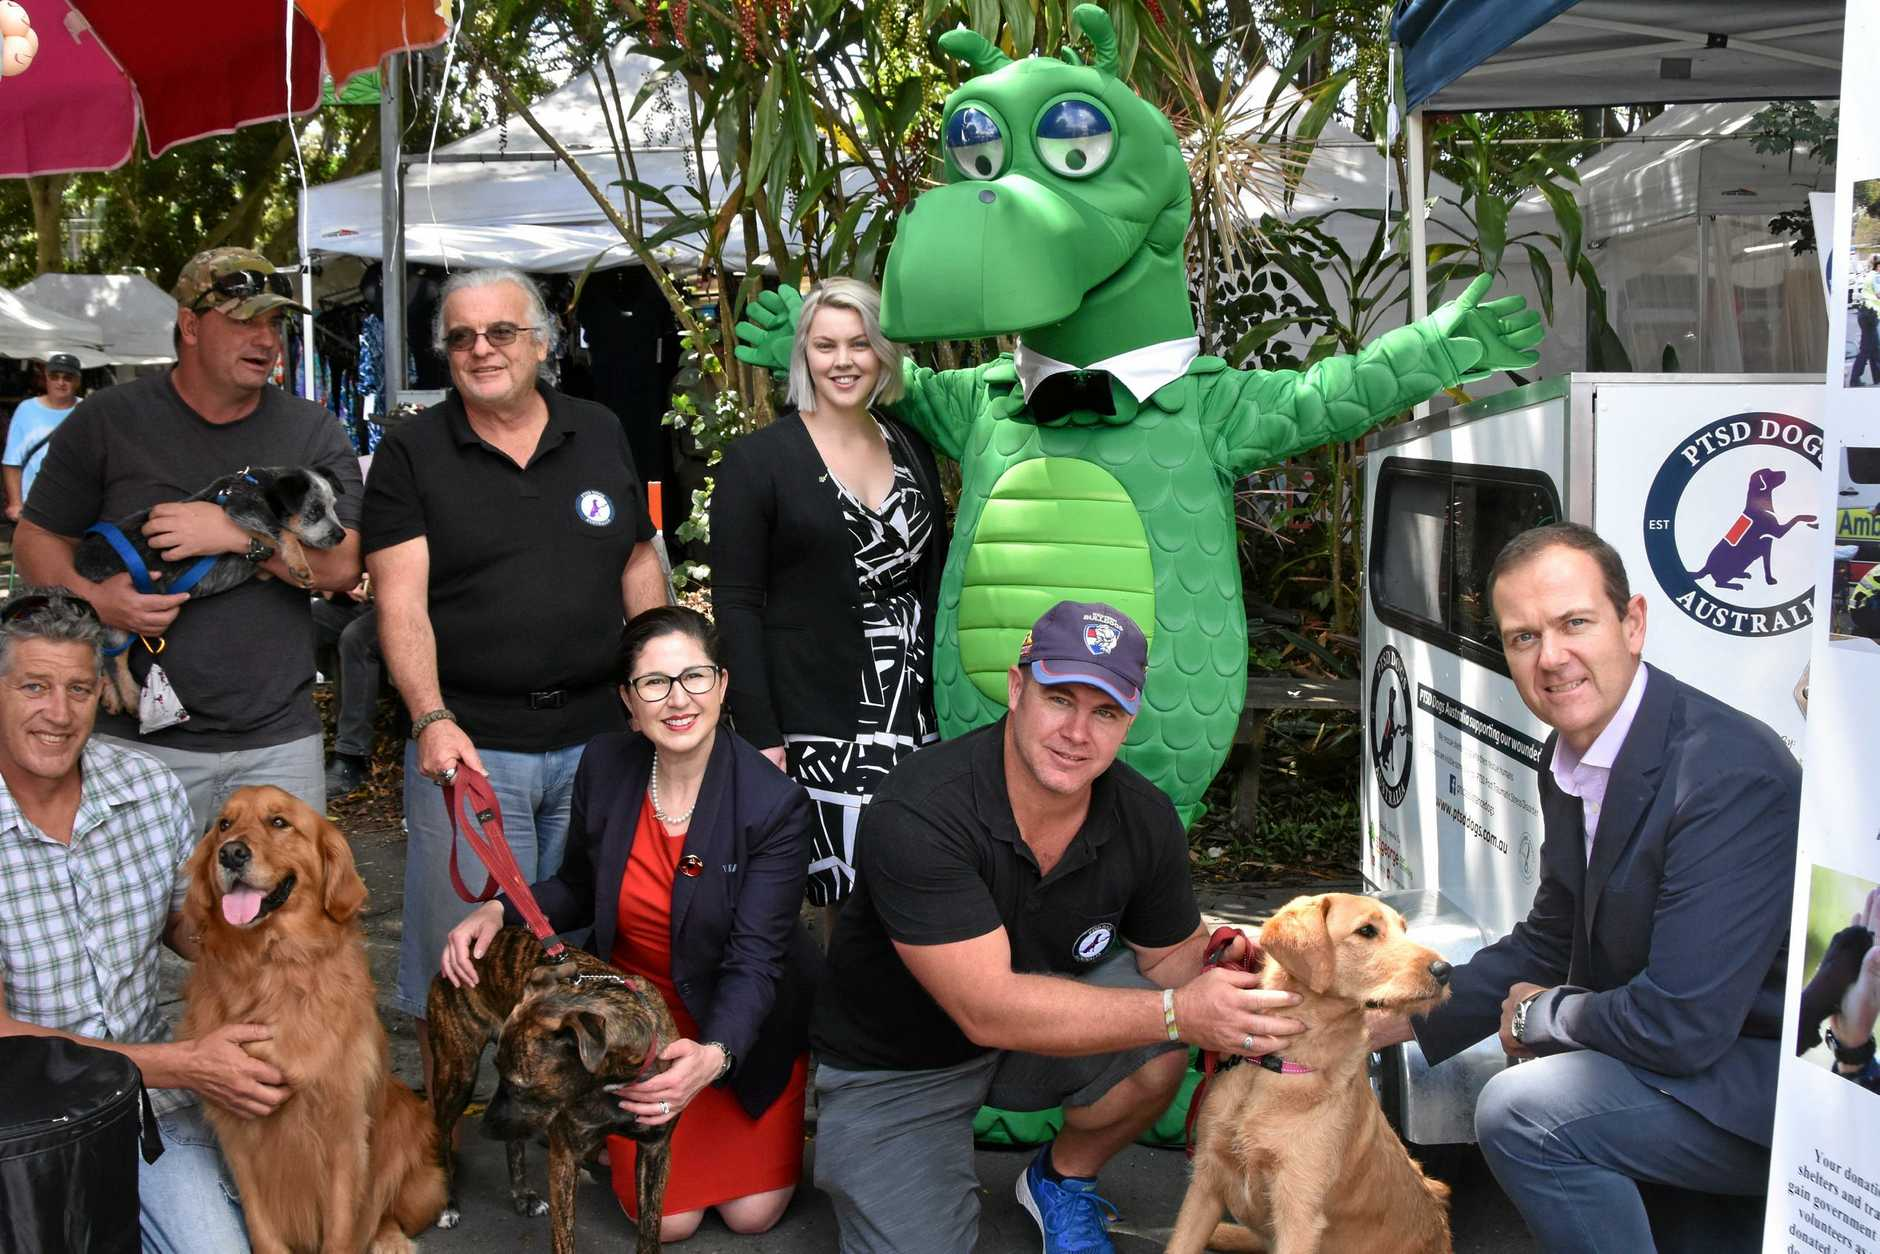 PTSD Dogs Australia with ex-veterans and St George Bank staff at Eumundi Markets on Wednesday.